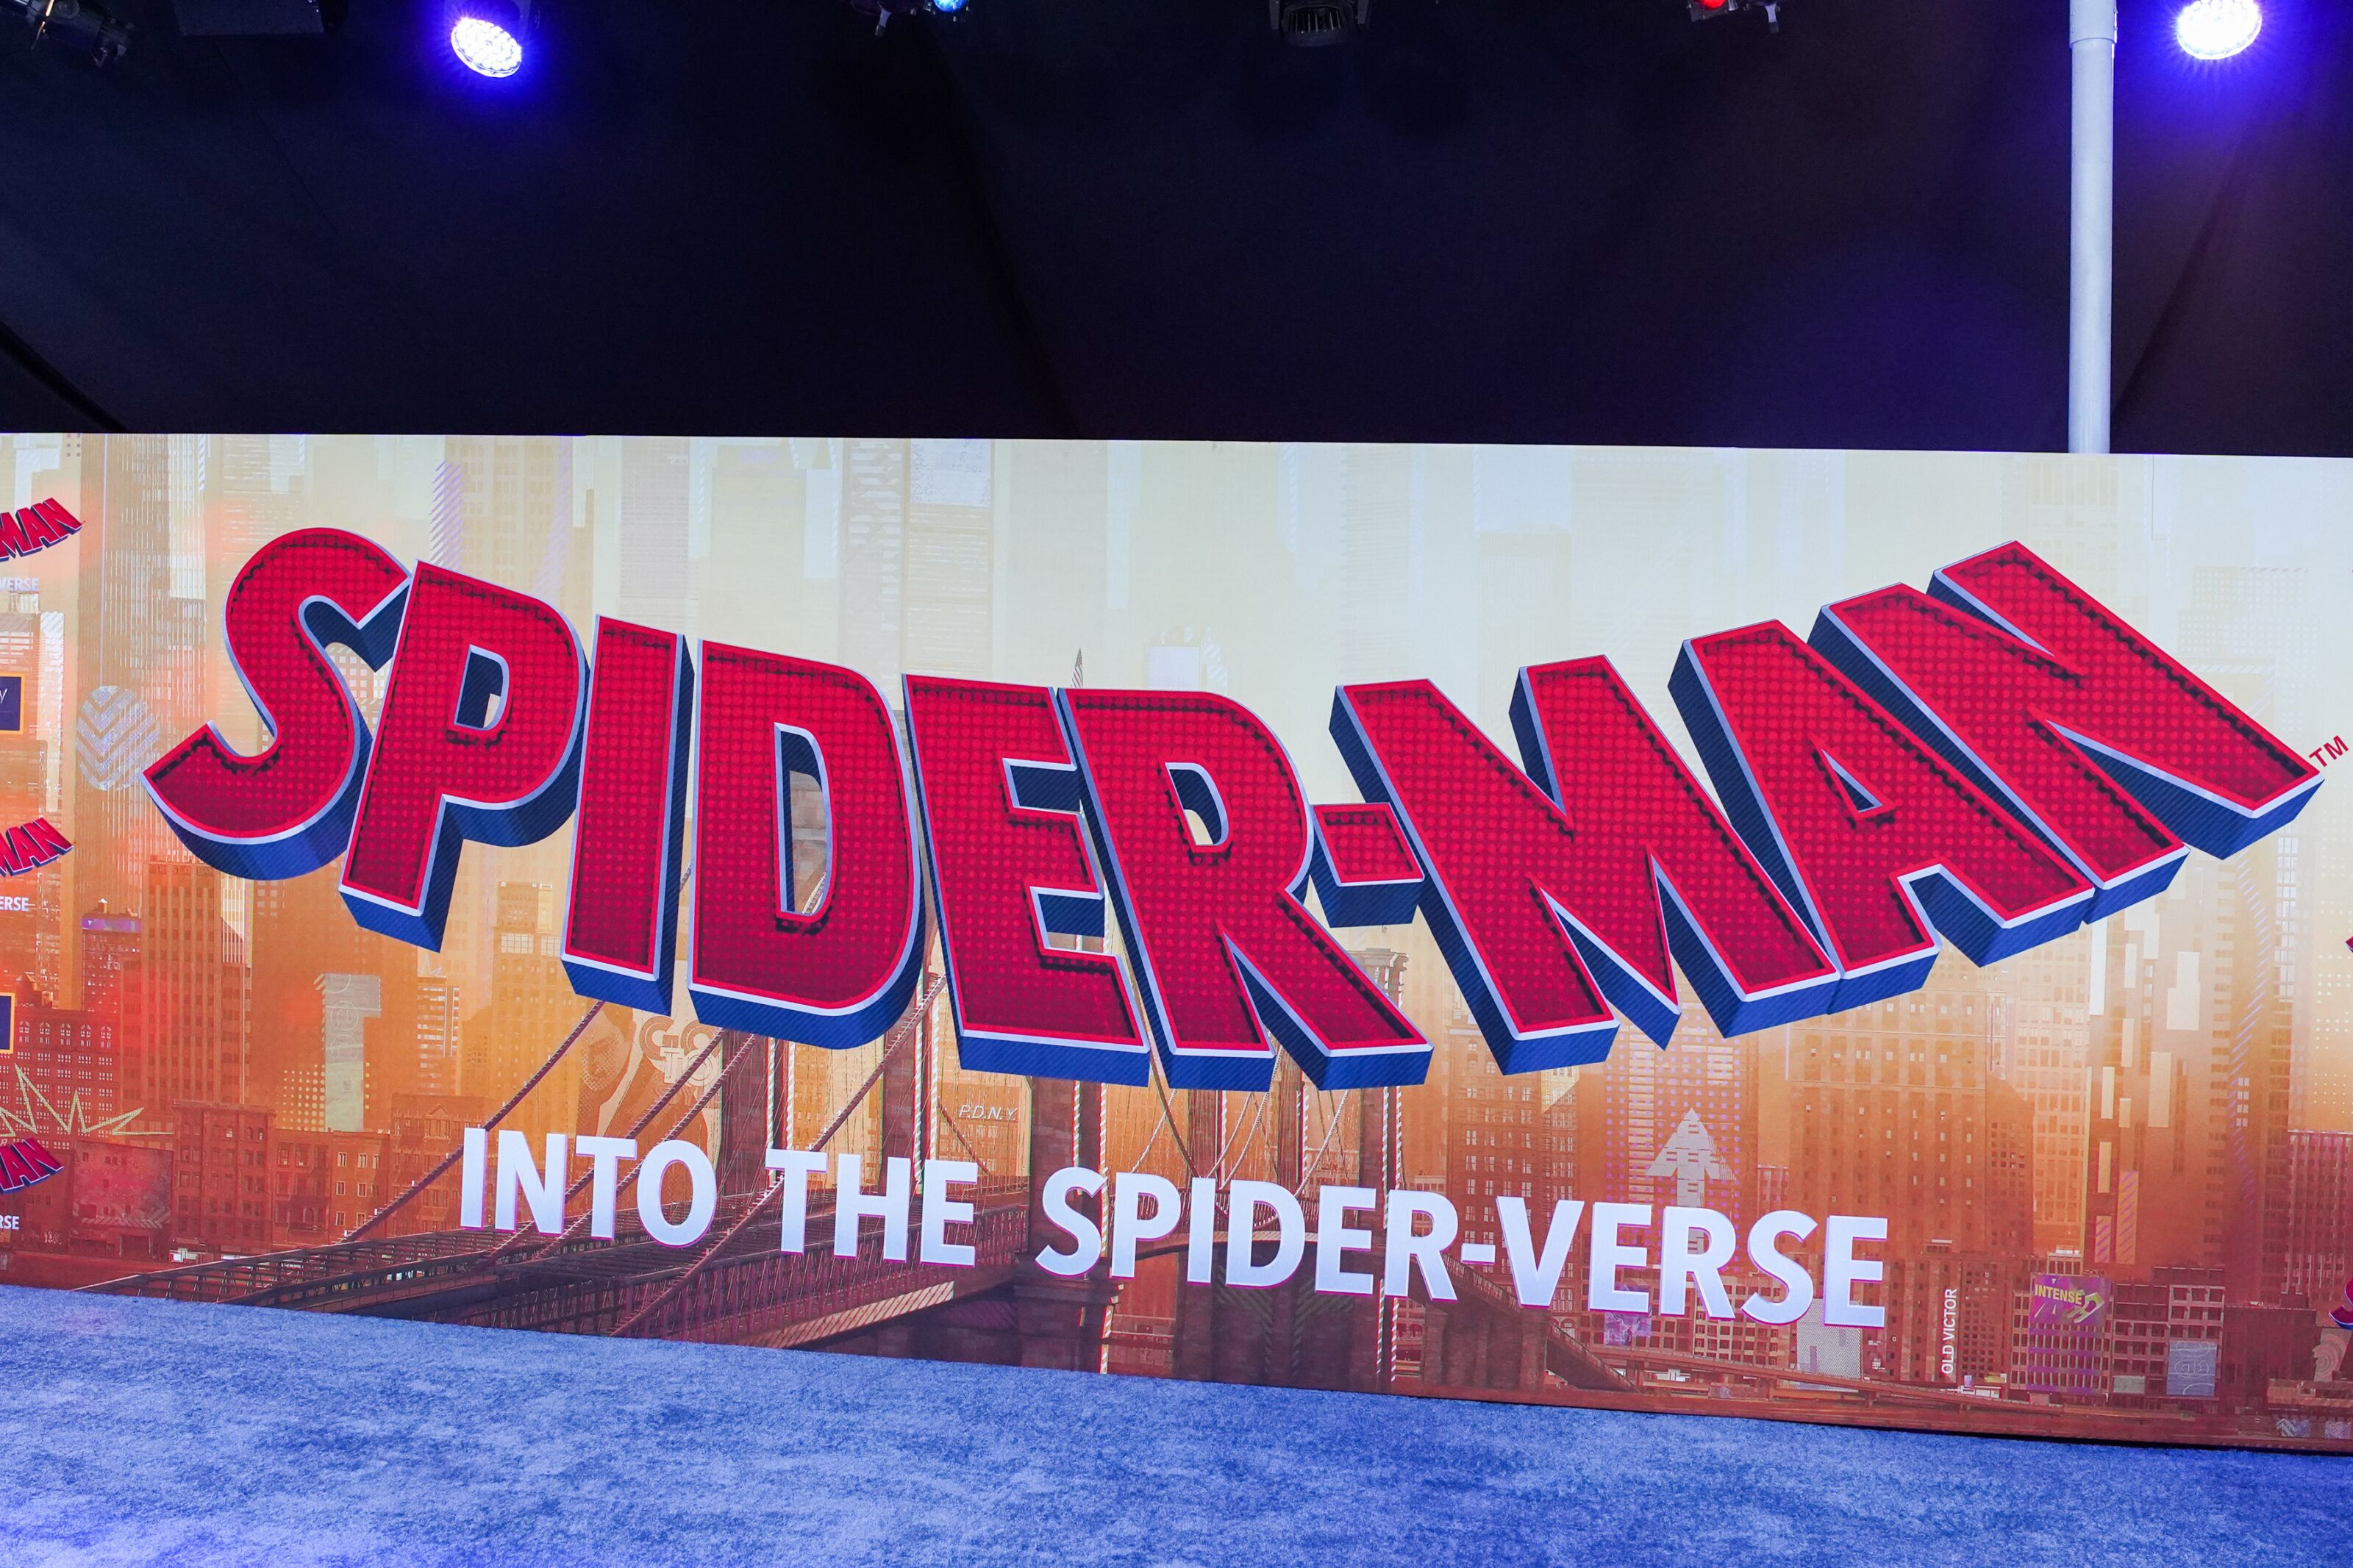 Spider-Man: Into The Spider-Verse album review and track list